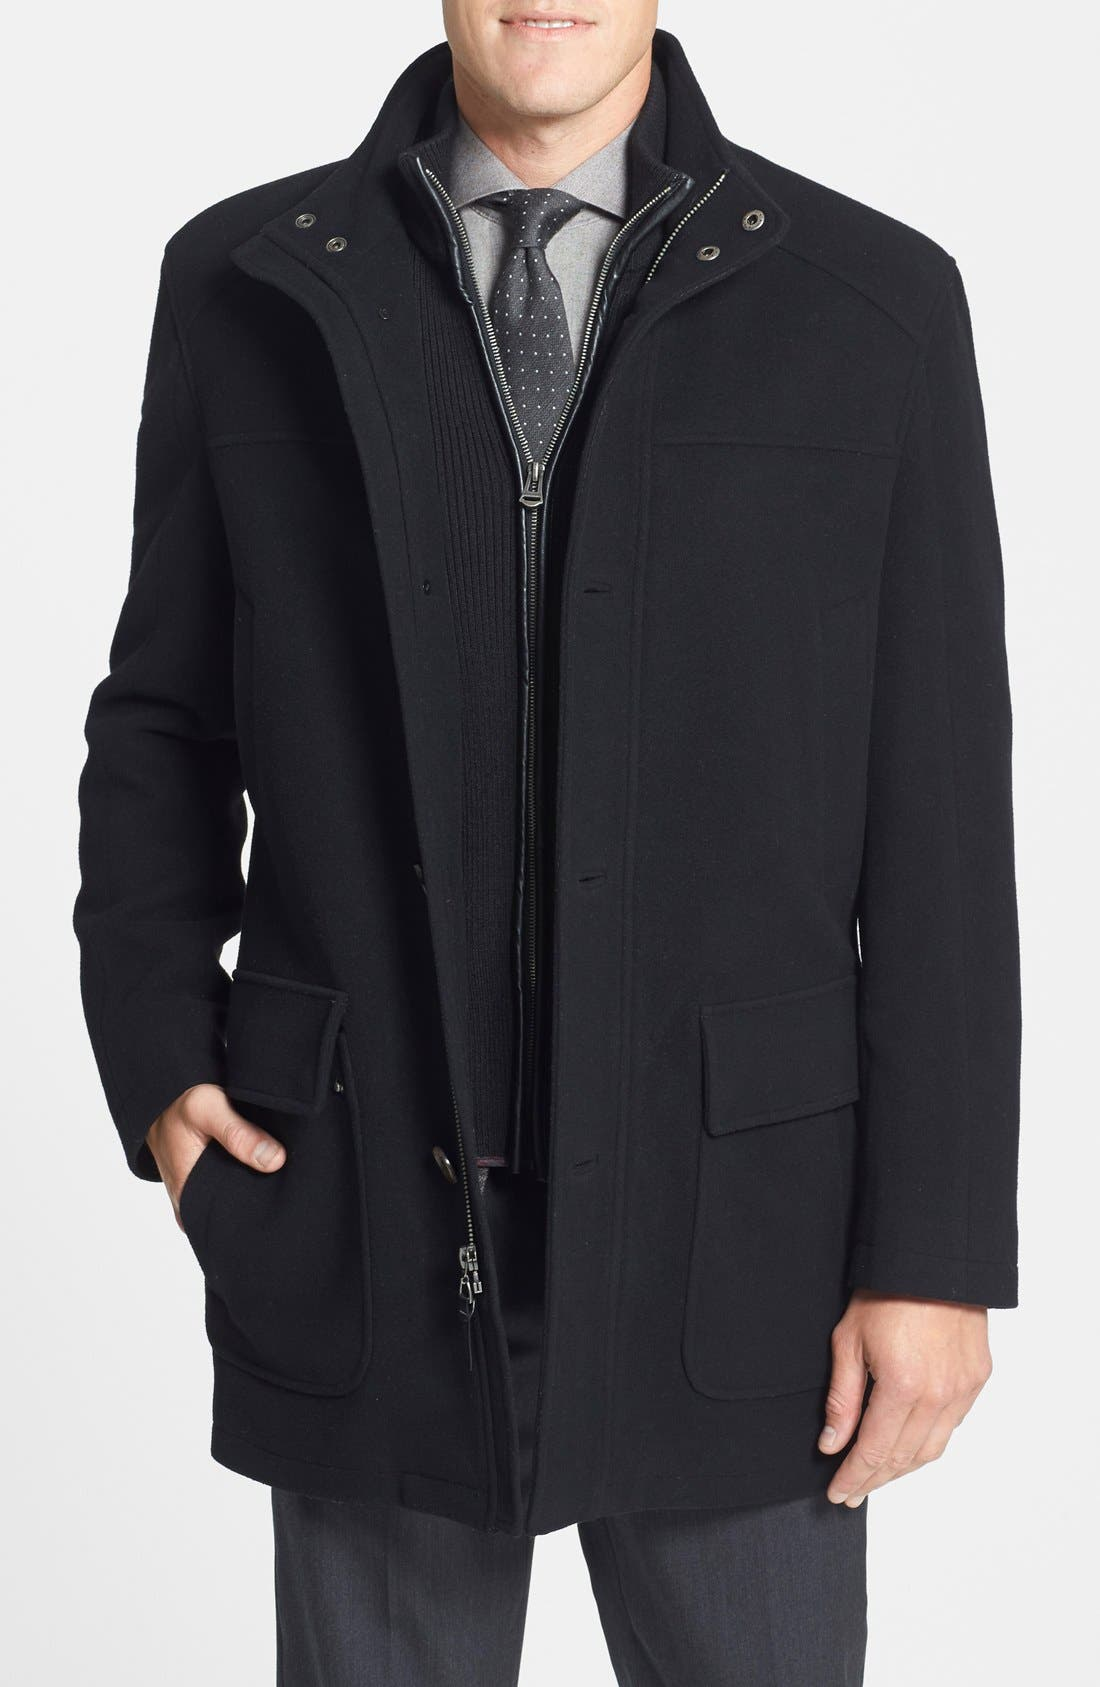 Wool Blend Topcoat with Inset Bib,                             Main thumbnail 2, color,